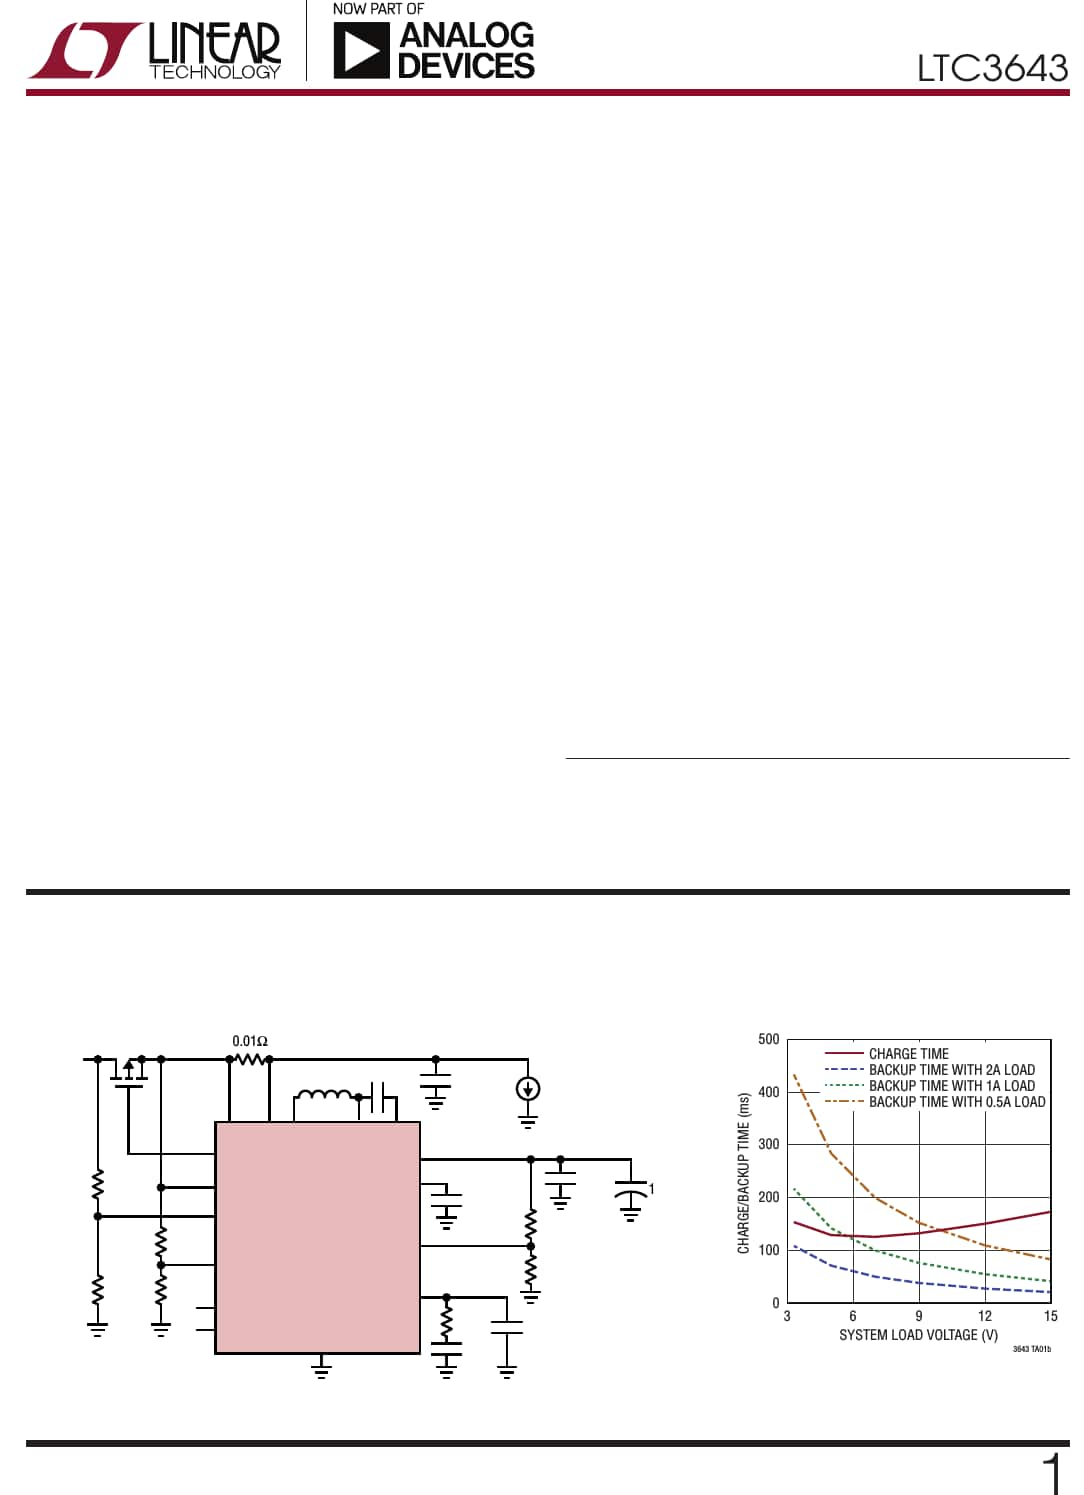 hight resolution of ltc3643 datasheet linear tech analog devices digikey hose furthermore condenser microphone diagram as well 24v relay coil